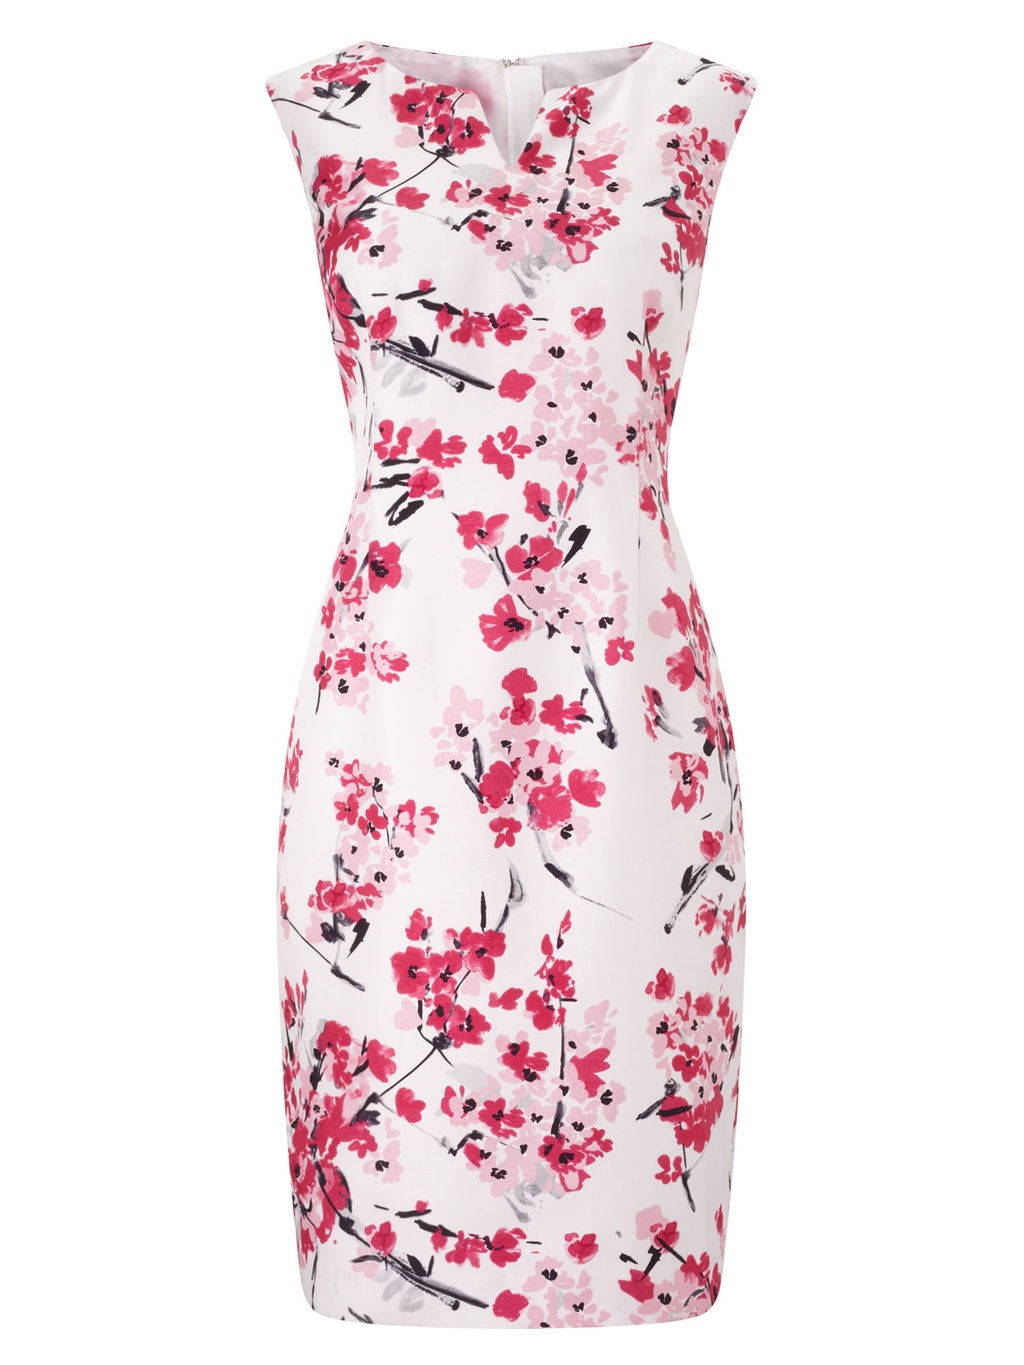 Floral Print Shift Dress, Pink/Multi - style: shift; neckline: v-neck; fit: tailored/fitted; sleeve style: sleeveless; predominant colour: ivory/cream; occasions: evening, occasion; length: just above the knee; fibres: polyester/polyamide - 100%; sleeve length: sleeveless; pattern type: fabric; pattern size: big & busy; pattern: patterned/print; texture group: woven light midweight; secondary colour: raspberry; season: s/s 2016; wardrobe: event